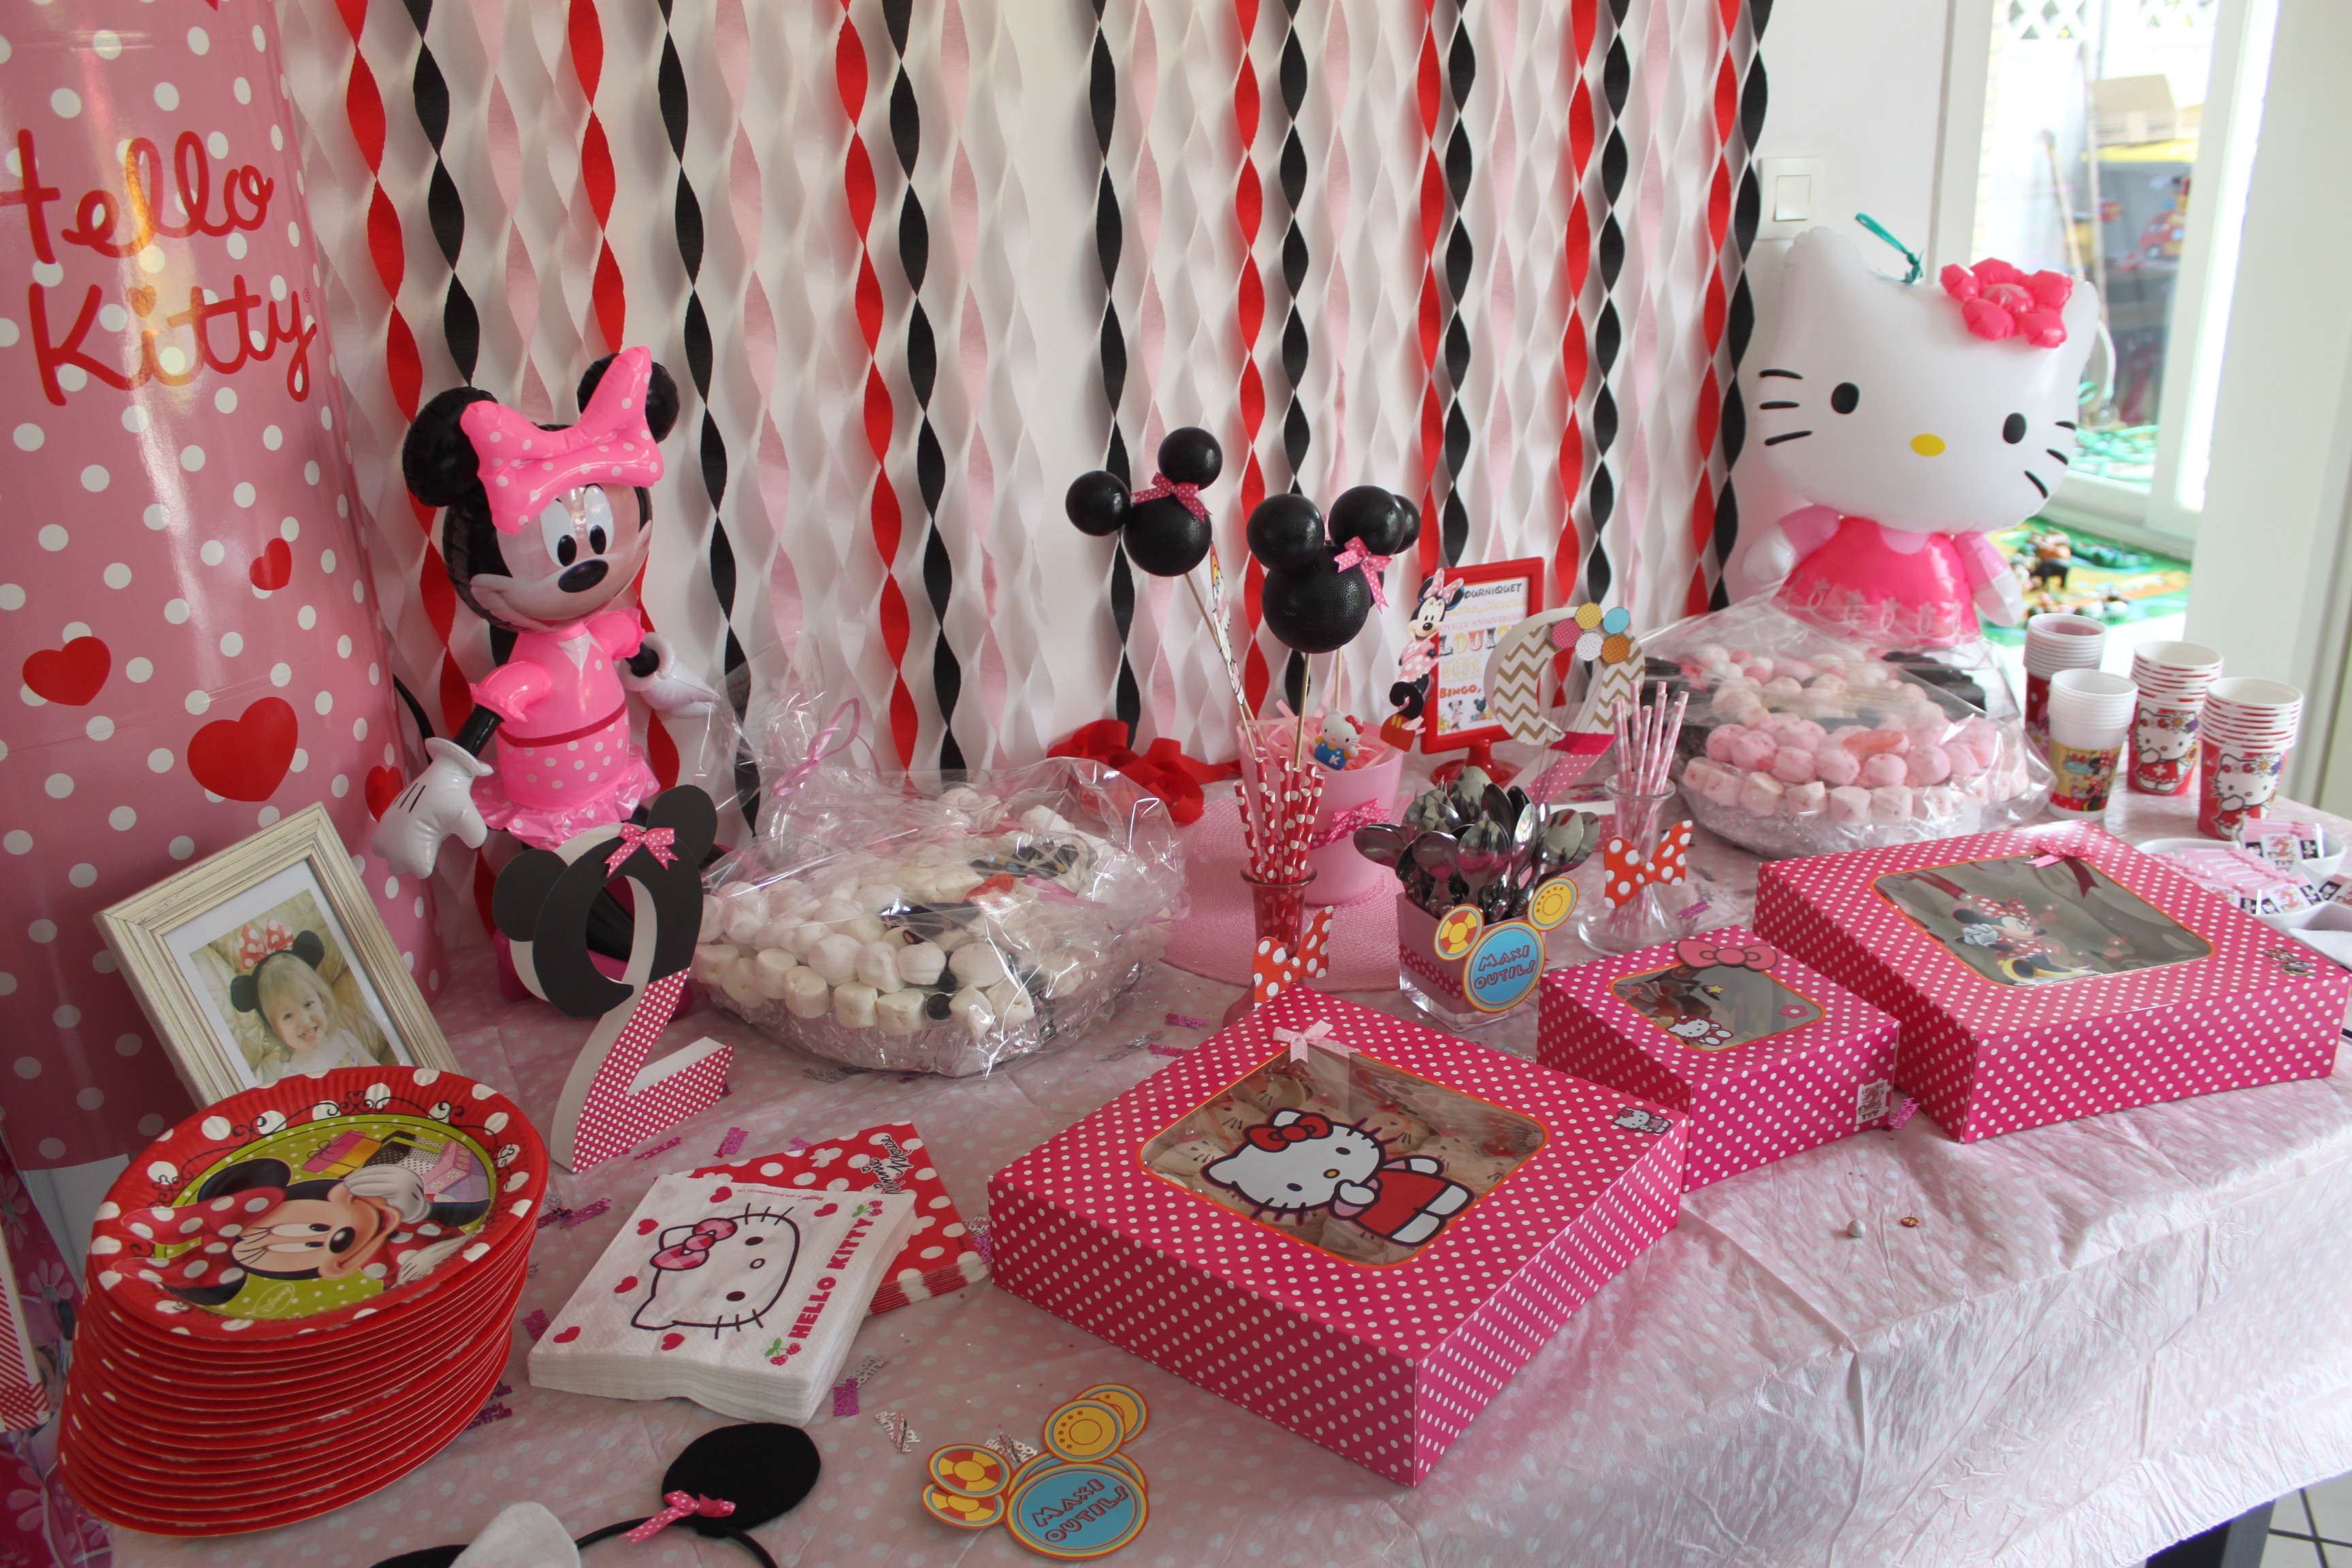 decoration minnie pour anniversaire. Black Bedroom Furniture Sets. Home Design Ideas